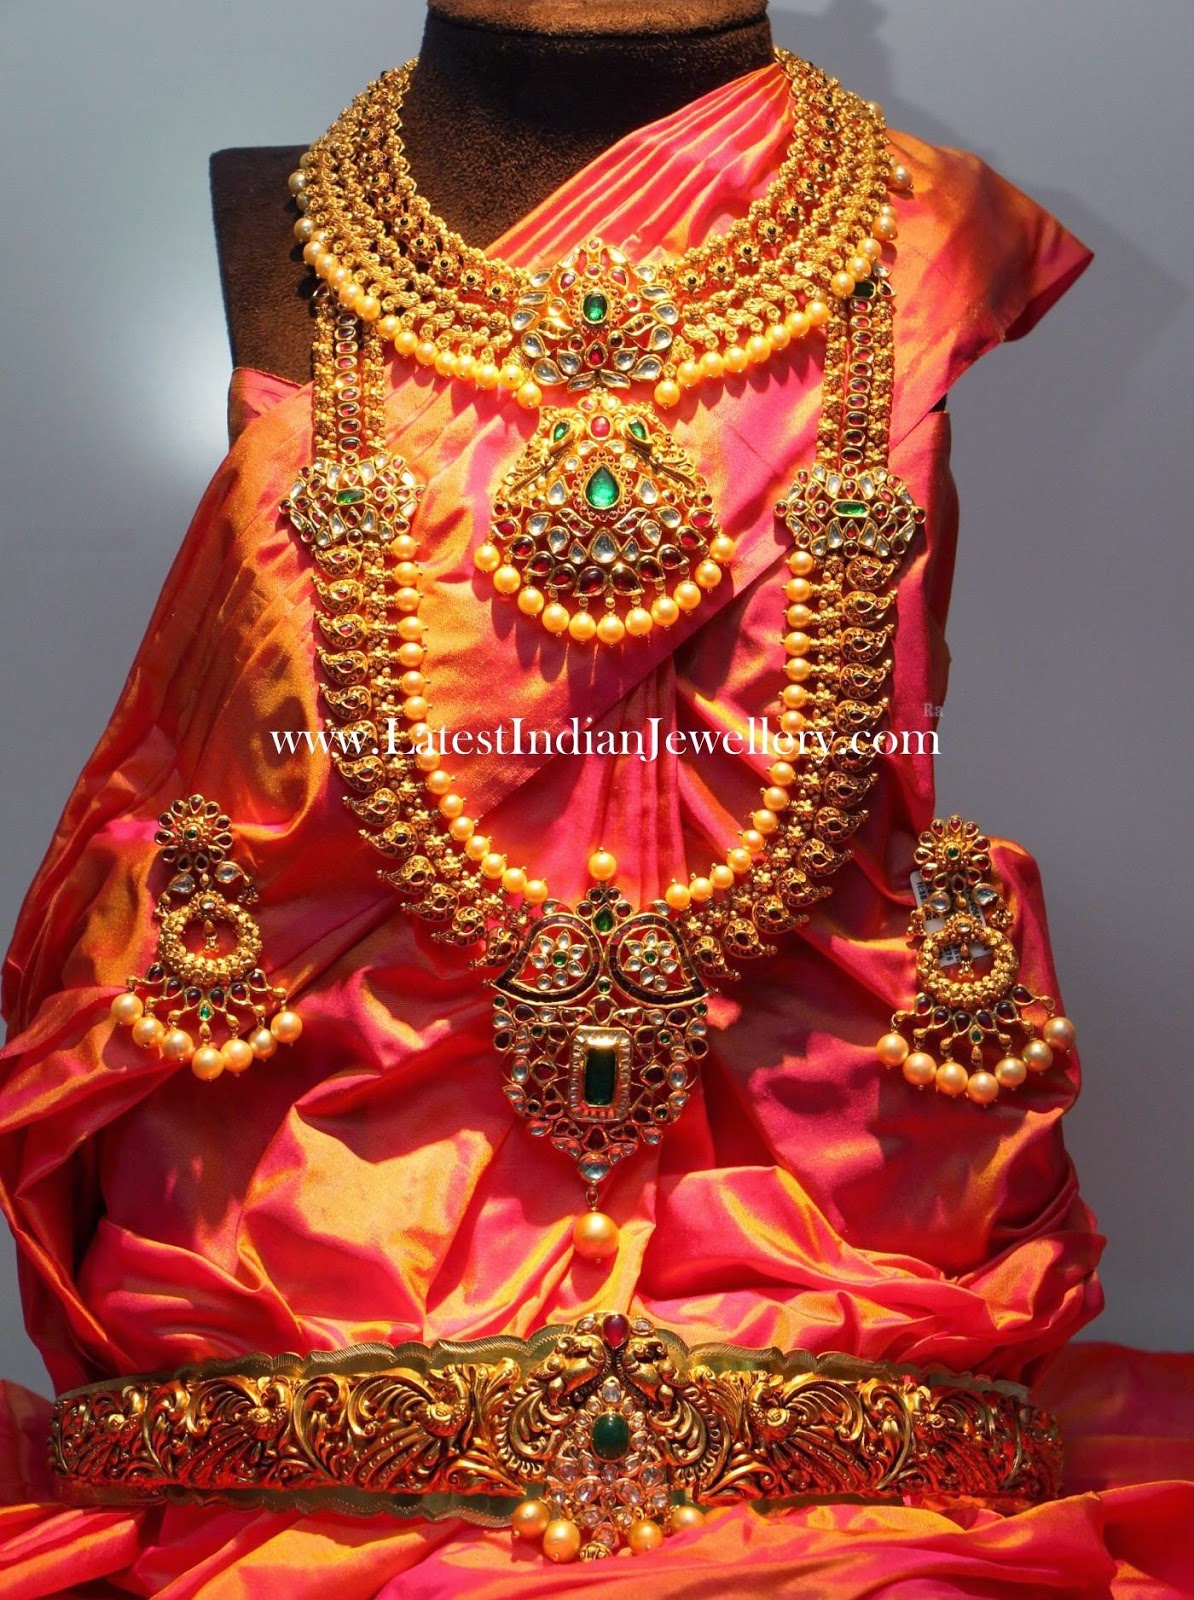 Complete Indian Wedding Jewellery Set